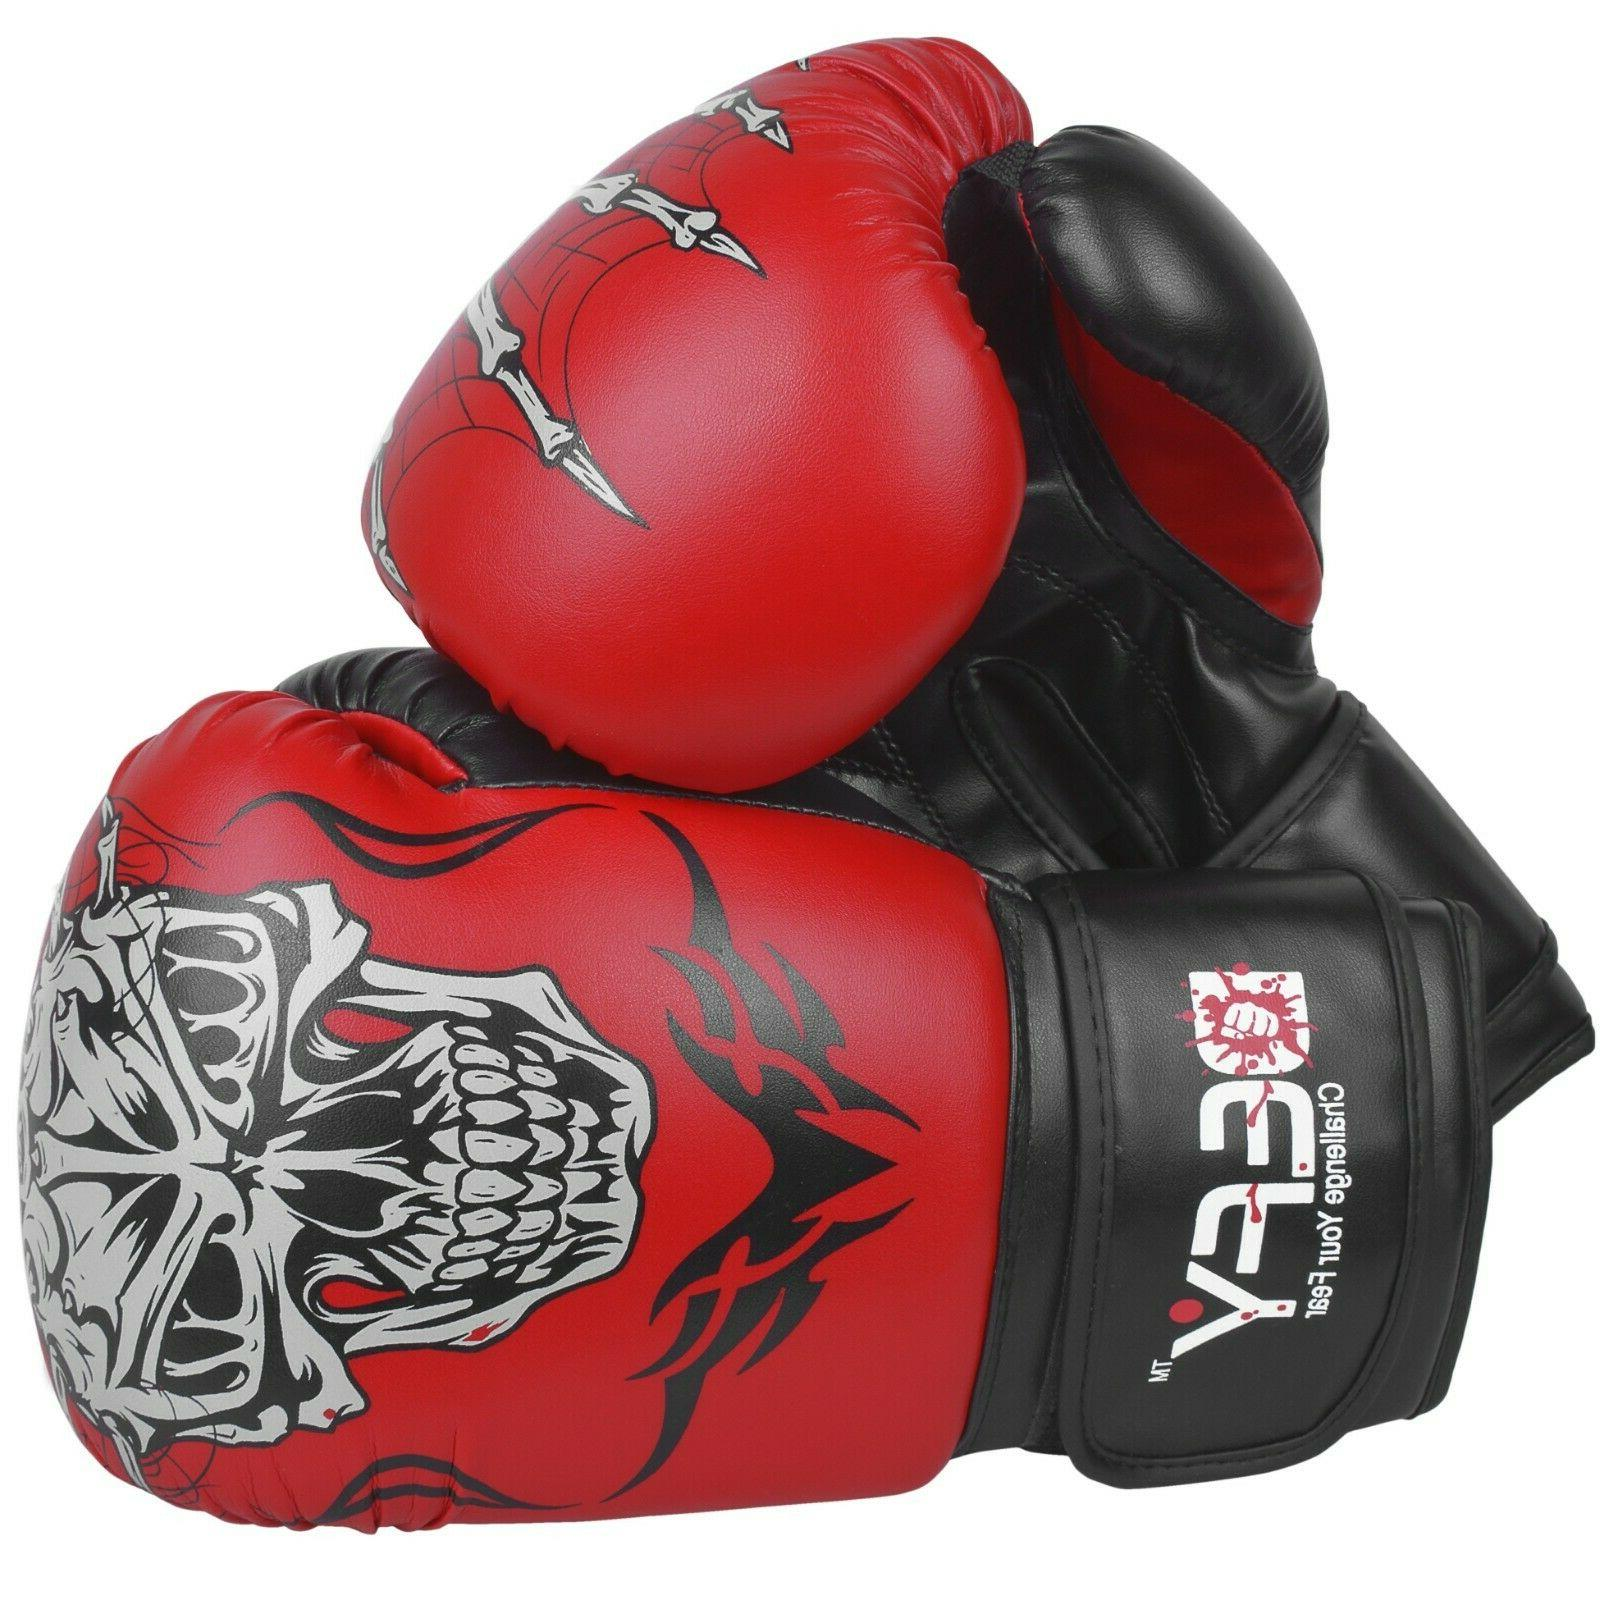 defy boxing gloves leather punch training sparring